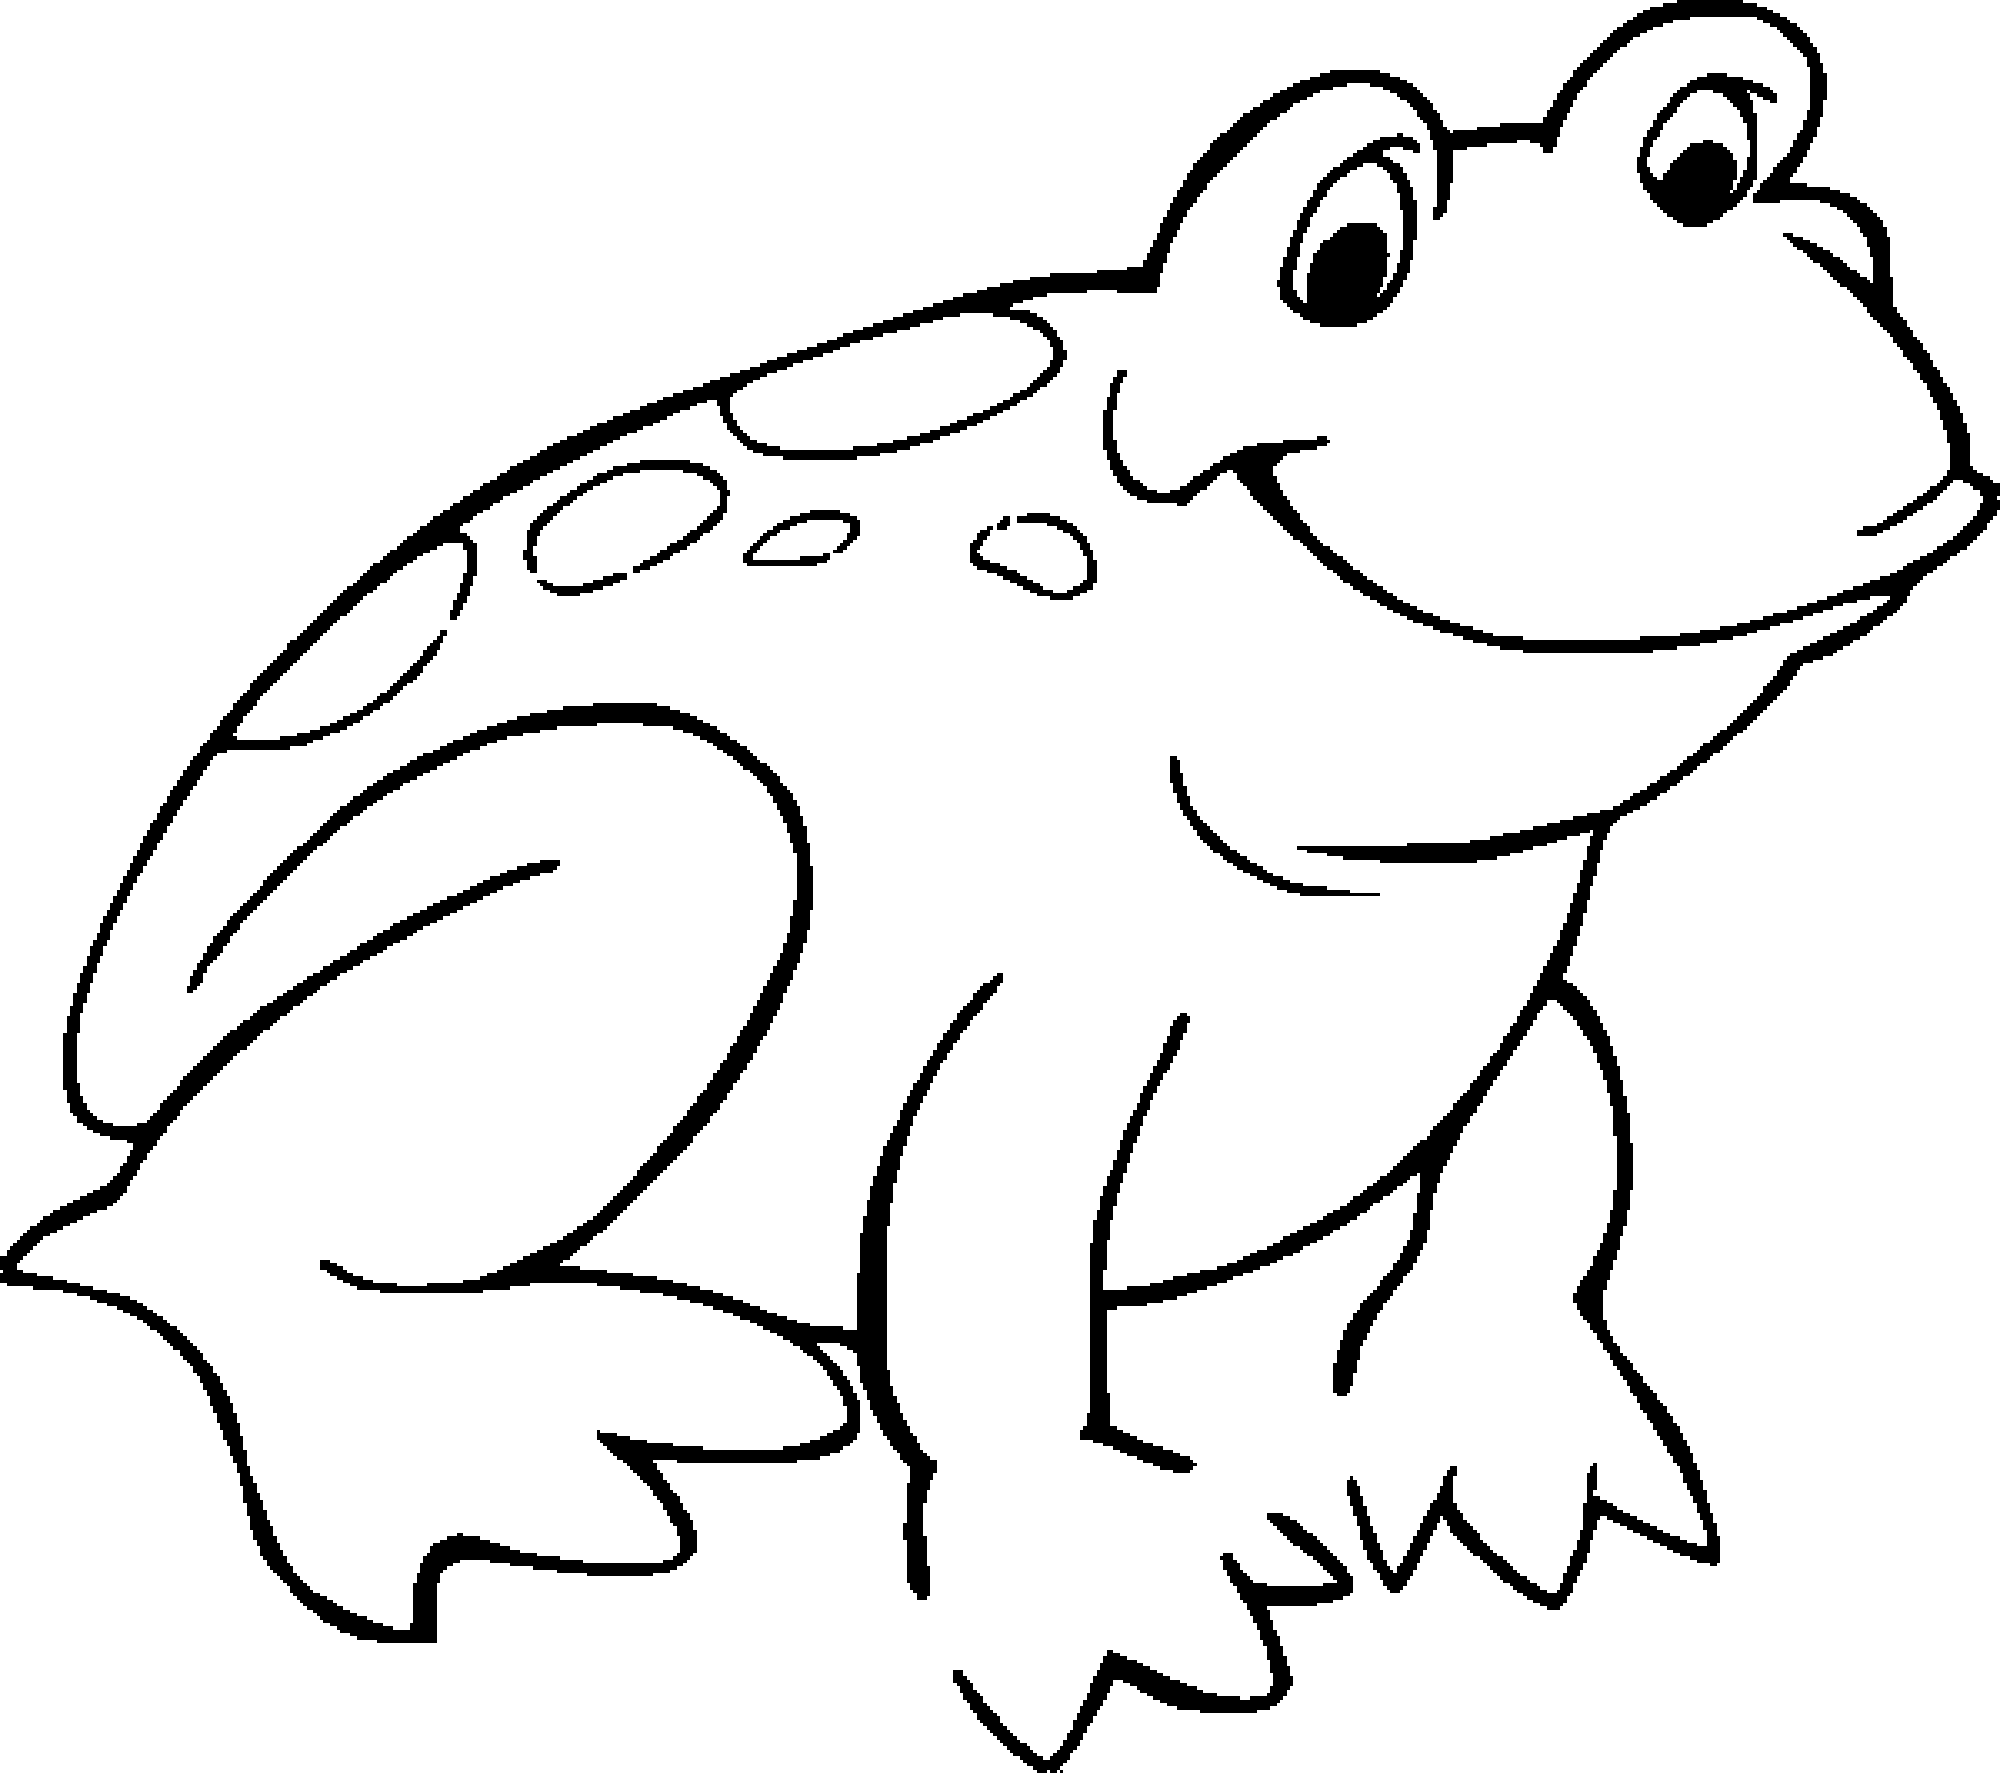 frog coloring sheets coloring pages coloring images of frogs coloring sheets frog